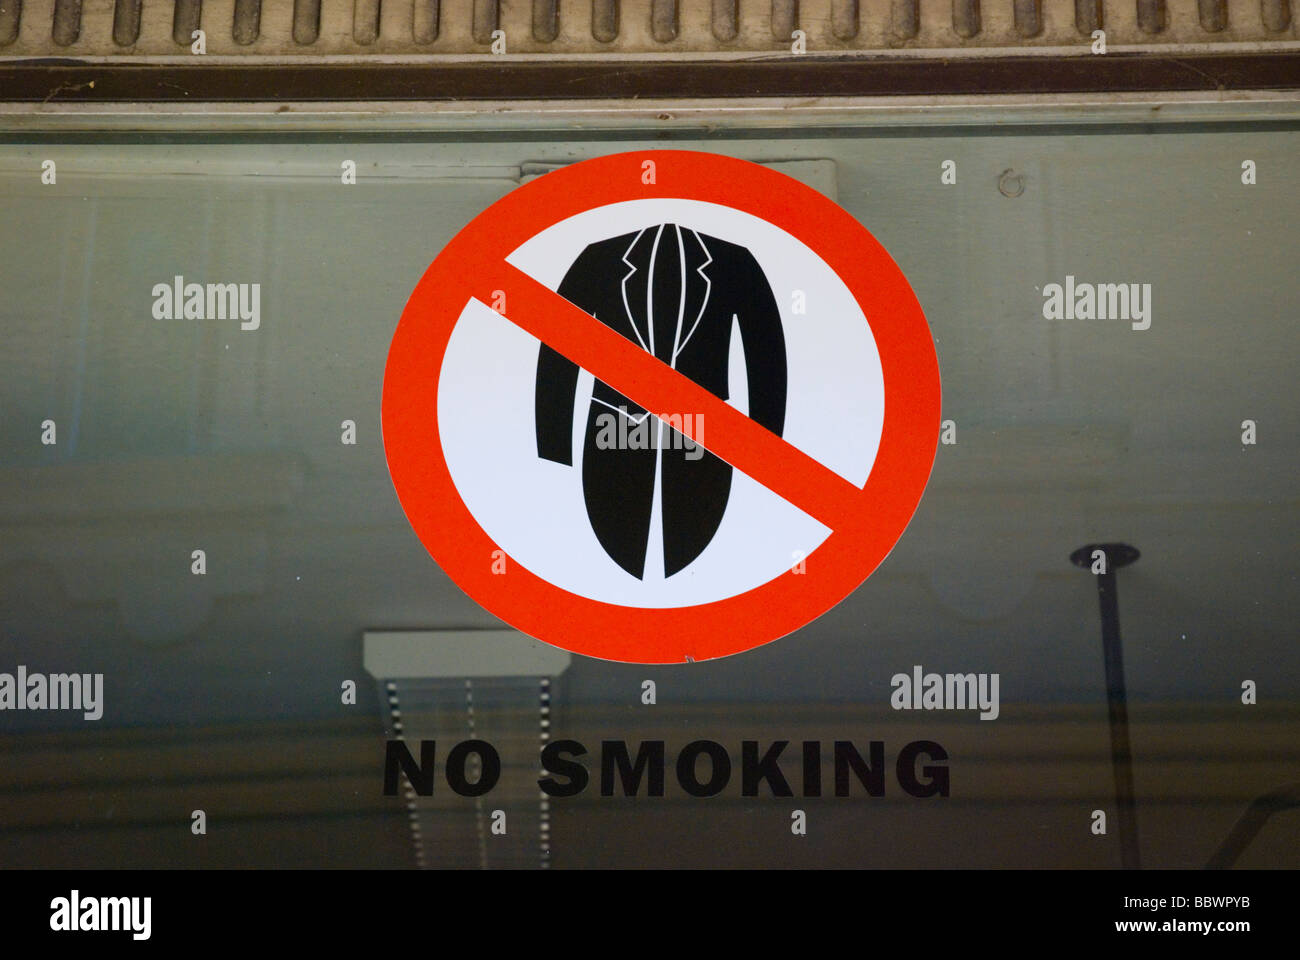 No smoking jackets sign in Tabor Czech Republic Europe Stock Photo